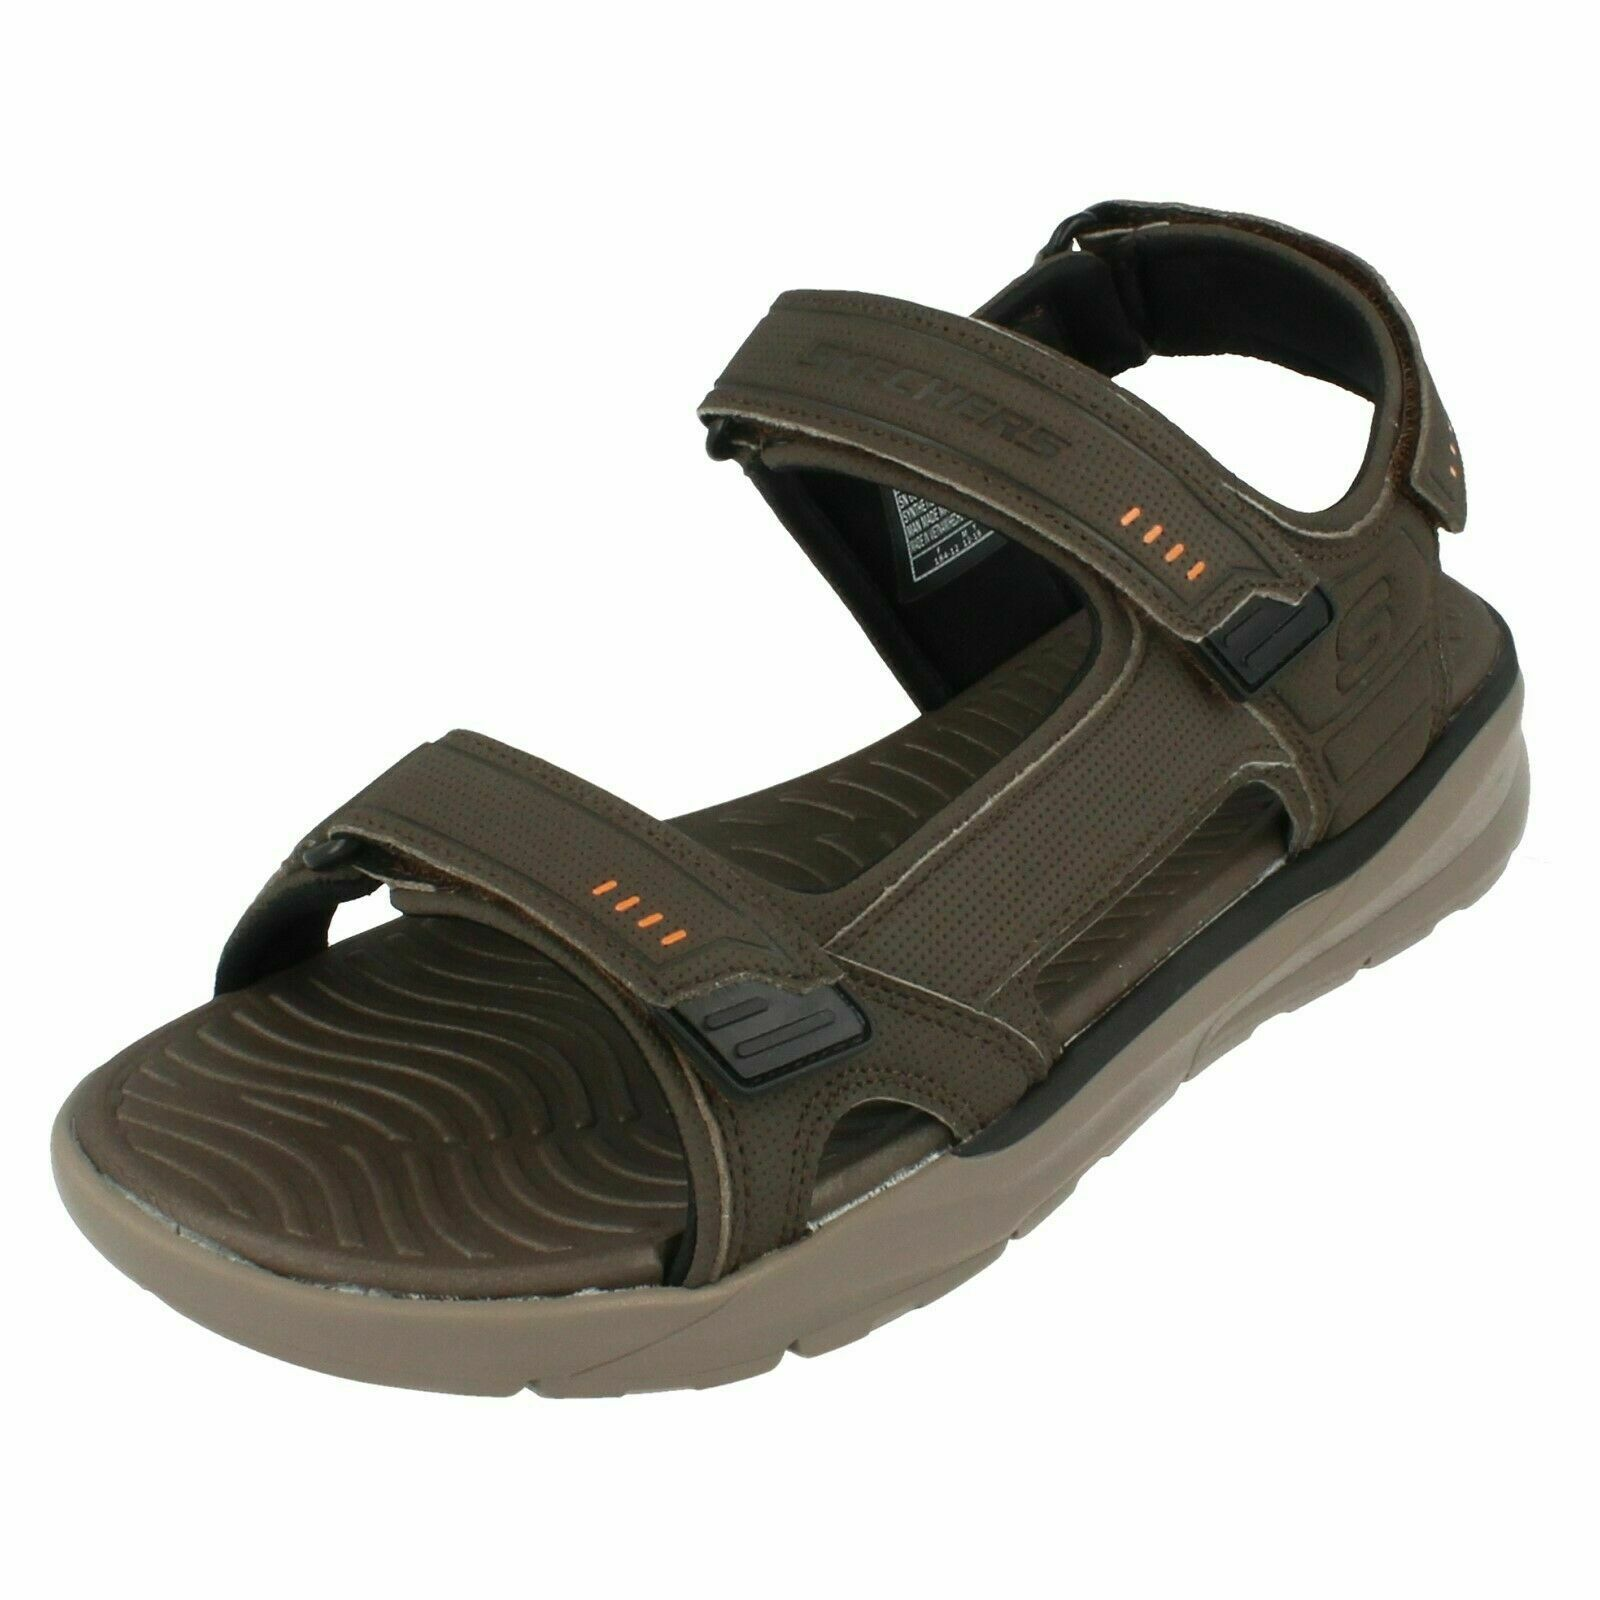 Mens Skechers Relaxed Fit Relone- Senco 66067 Casual Sandals